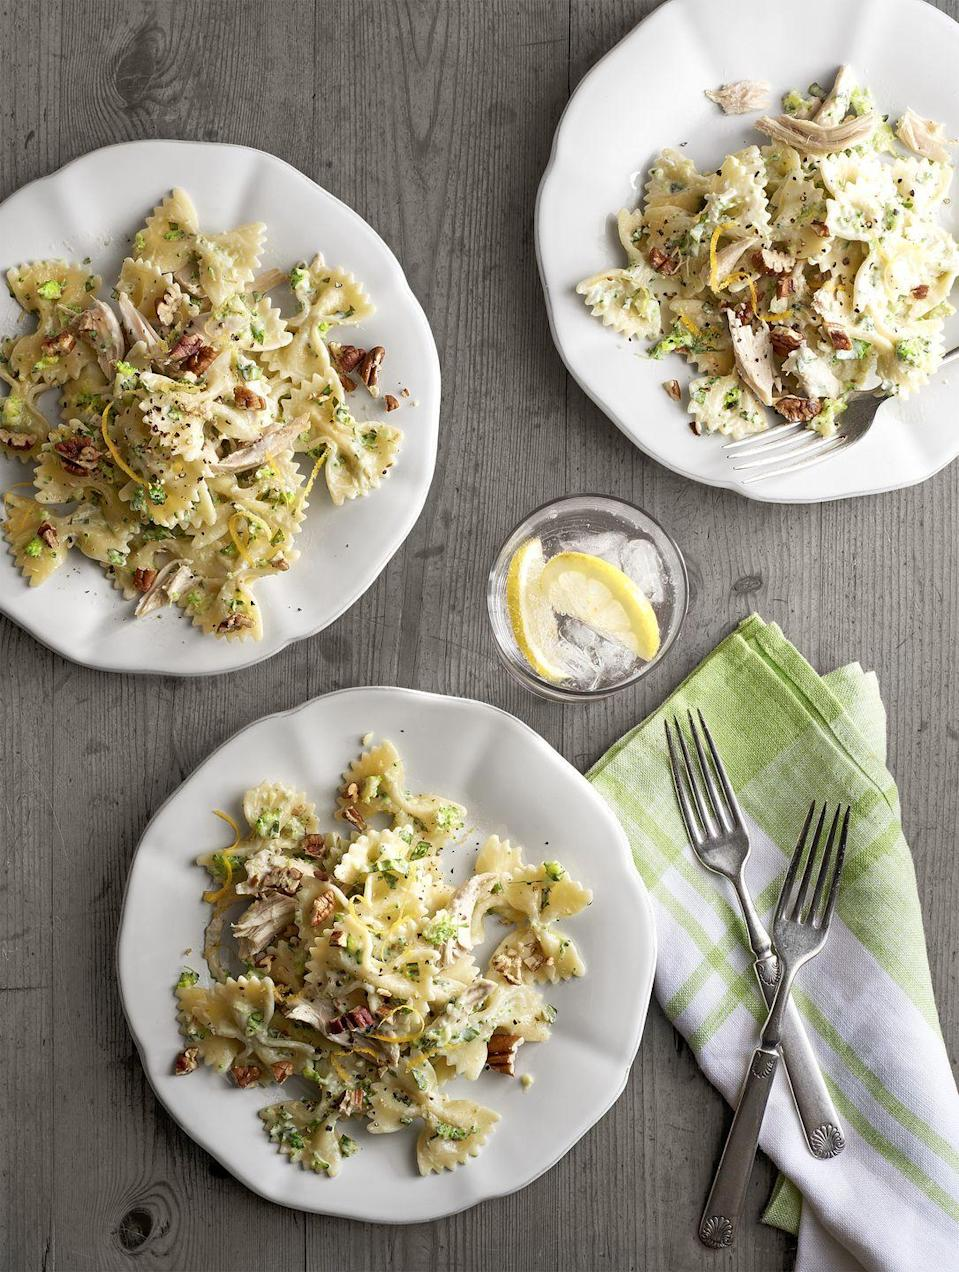 """<p>Toasted pecans add unexpected warmth and crunch to this creamy pasta dish.</p><p><a href=""""https://www.countryliving.com/food-drinks/recipes/a6297/creamy-chicken-broccoli-pesto-bow-ties-recipe-clx0215/"""" rel=""""nofollow noopener"""" target=""""_blank"""" data-ylk=""""slk:Get the recipe."""" class=""""link rapid-noclick-resp""""><strong>Get the recipe.</strong> </a></p>"""